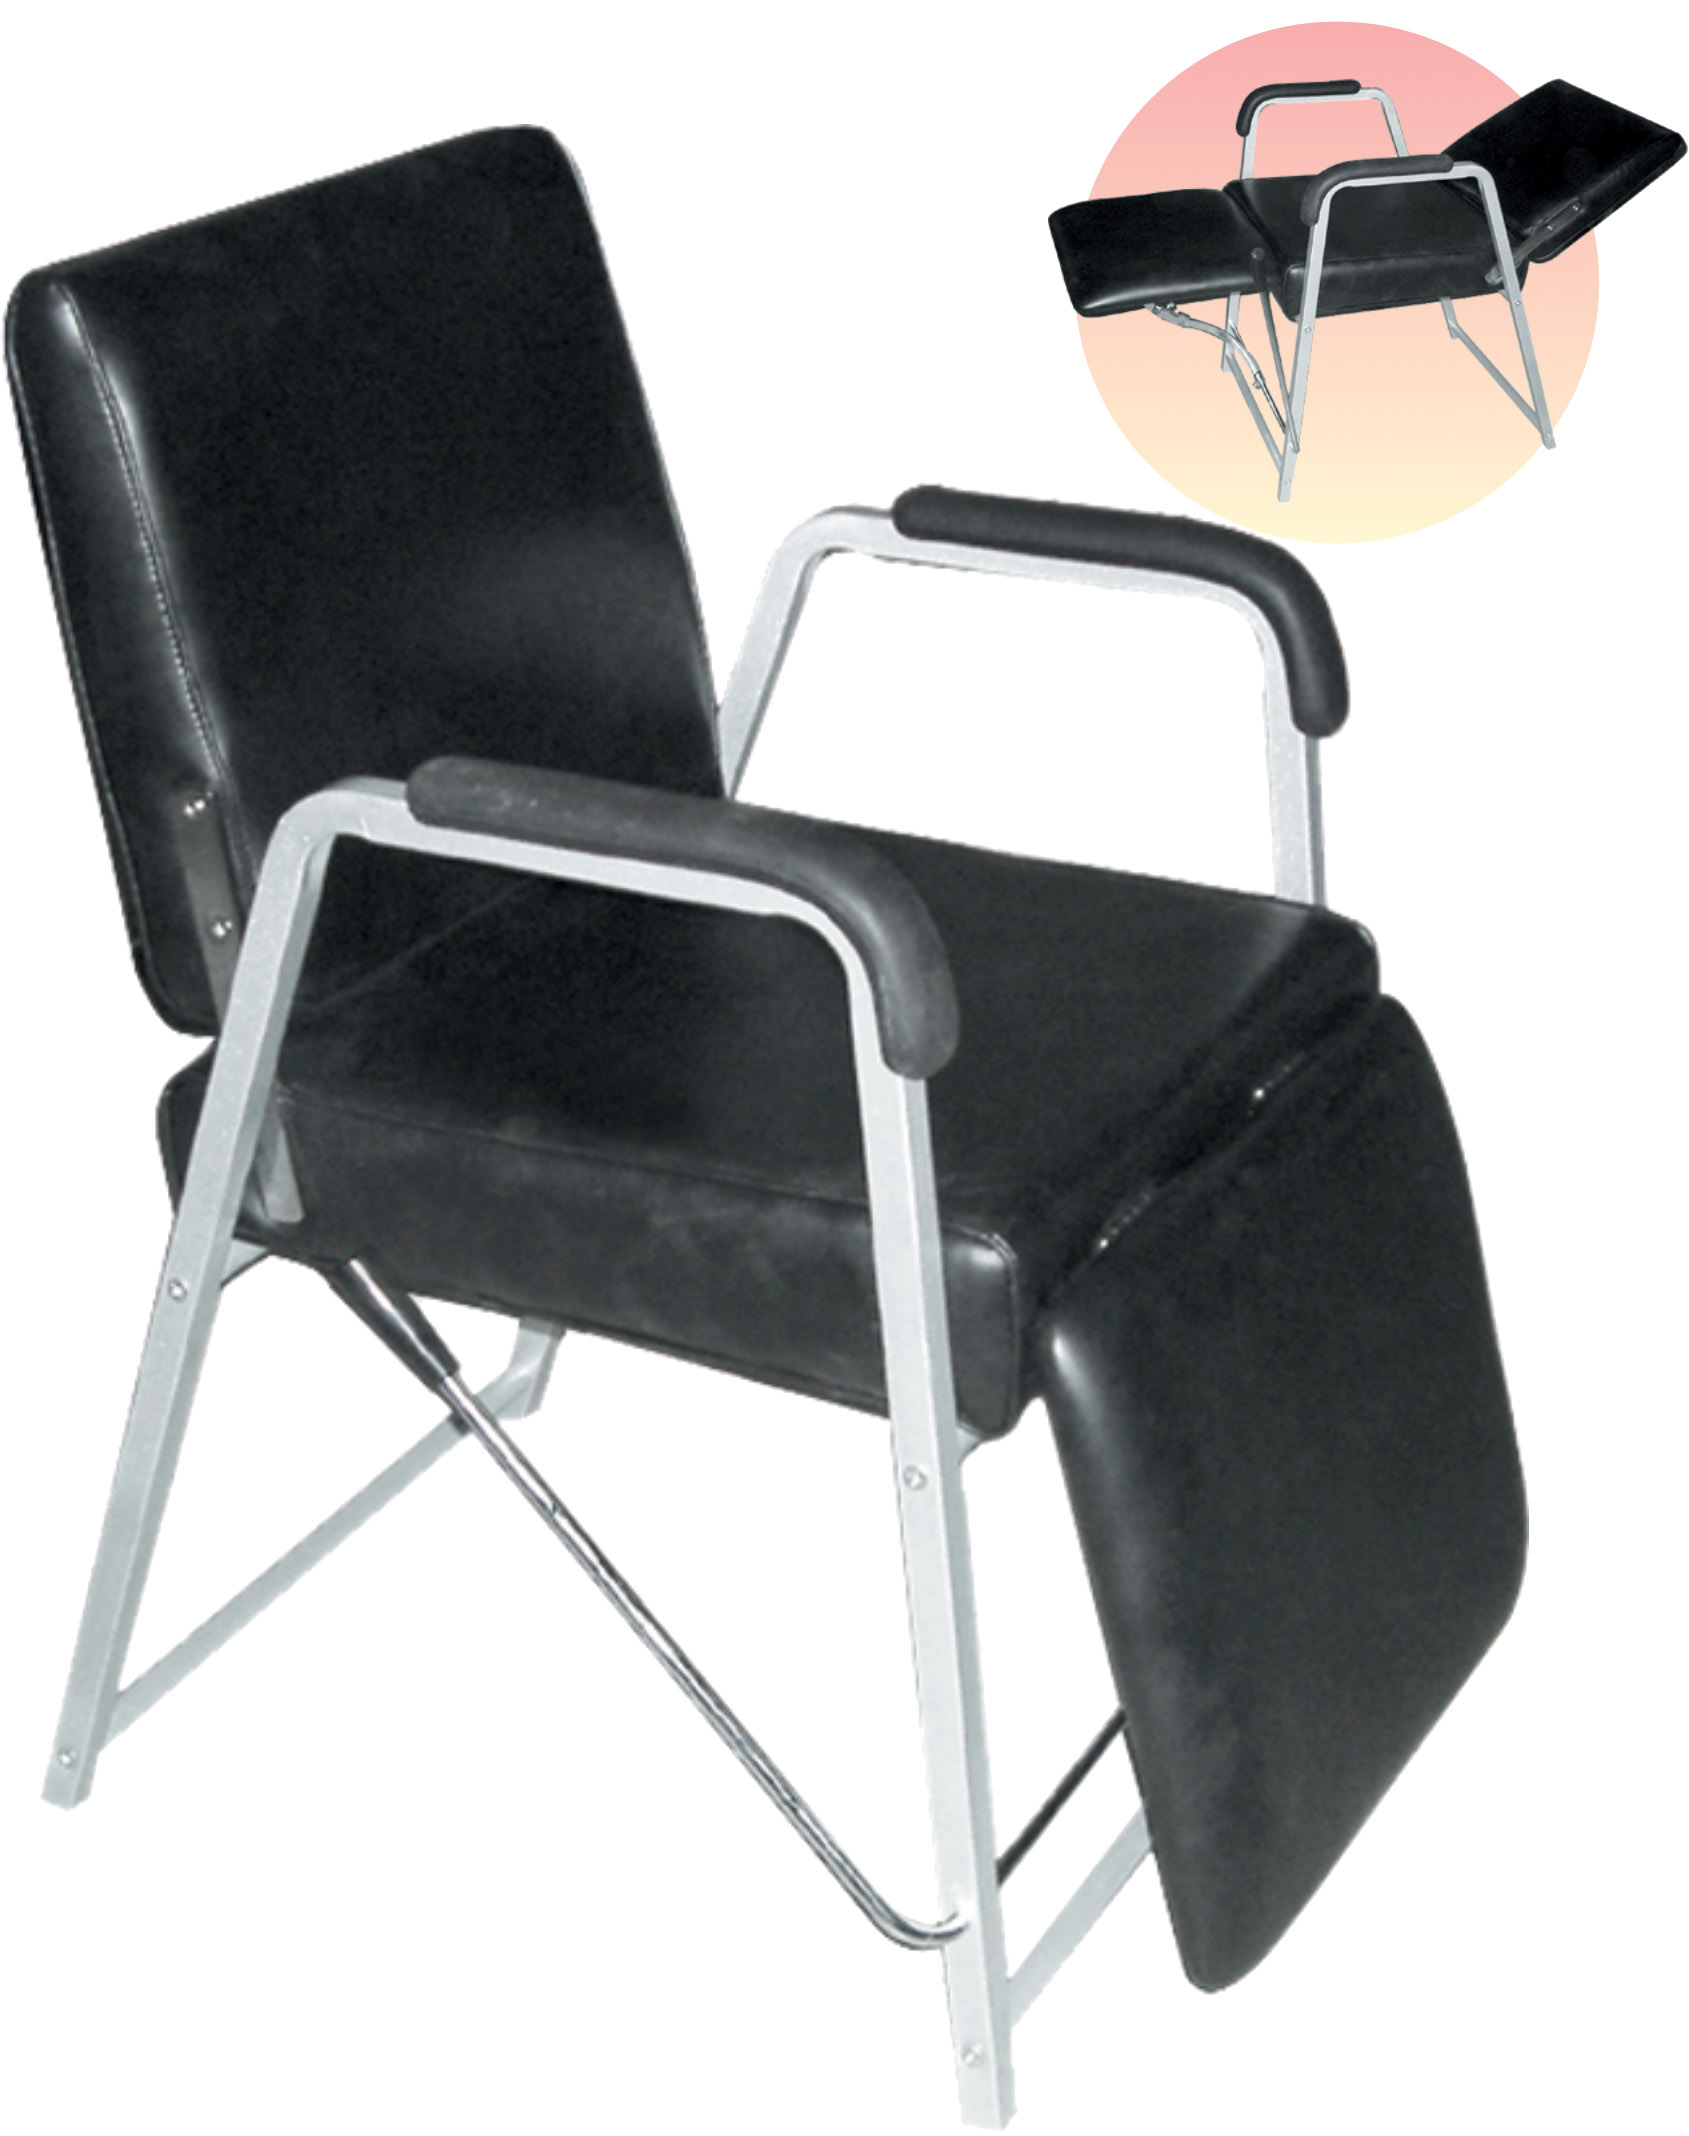 Classic Reclining Shampoo Chair With Adjustable Back And